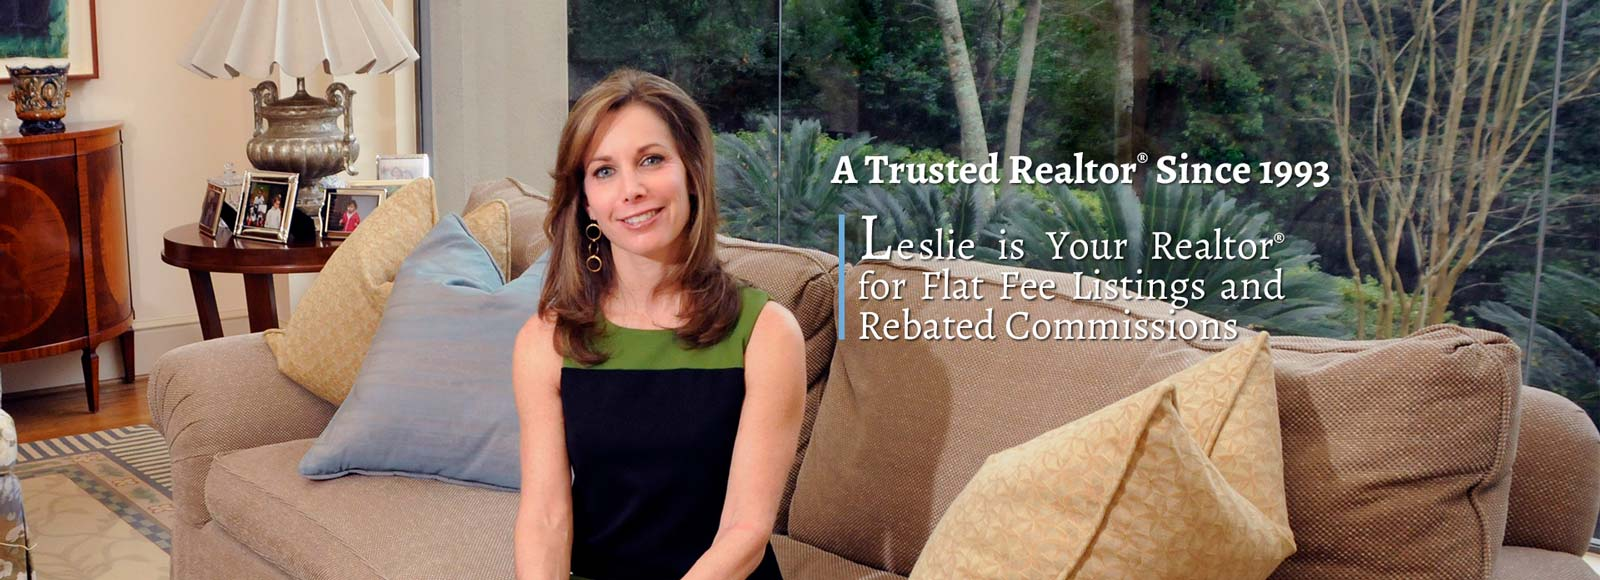 Leslie is Your Realtor® for Flat Fee Listings and Rebated Commissions